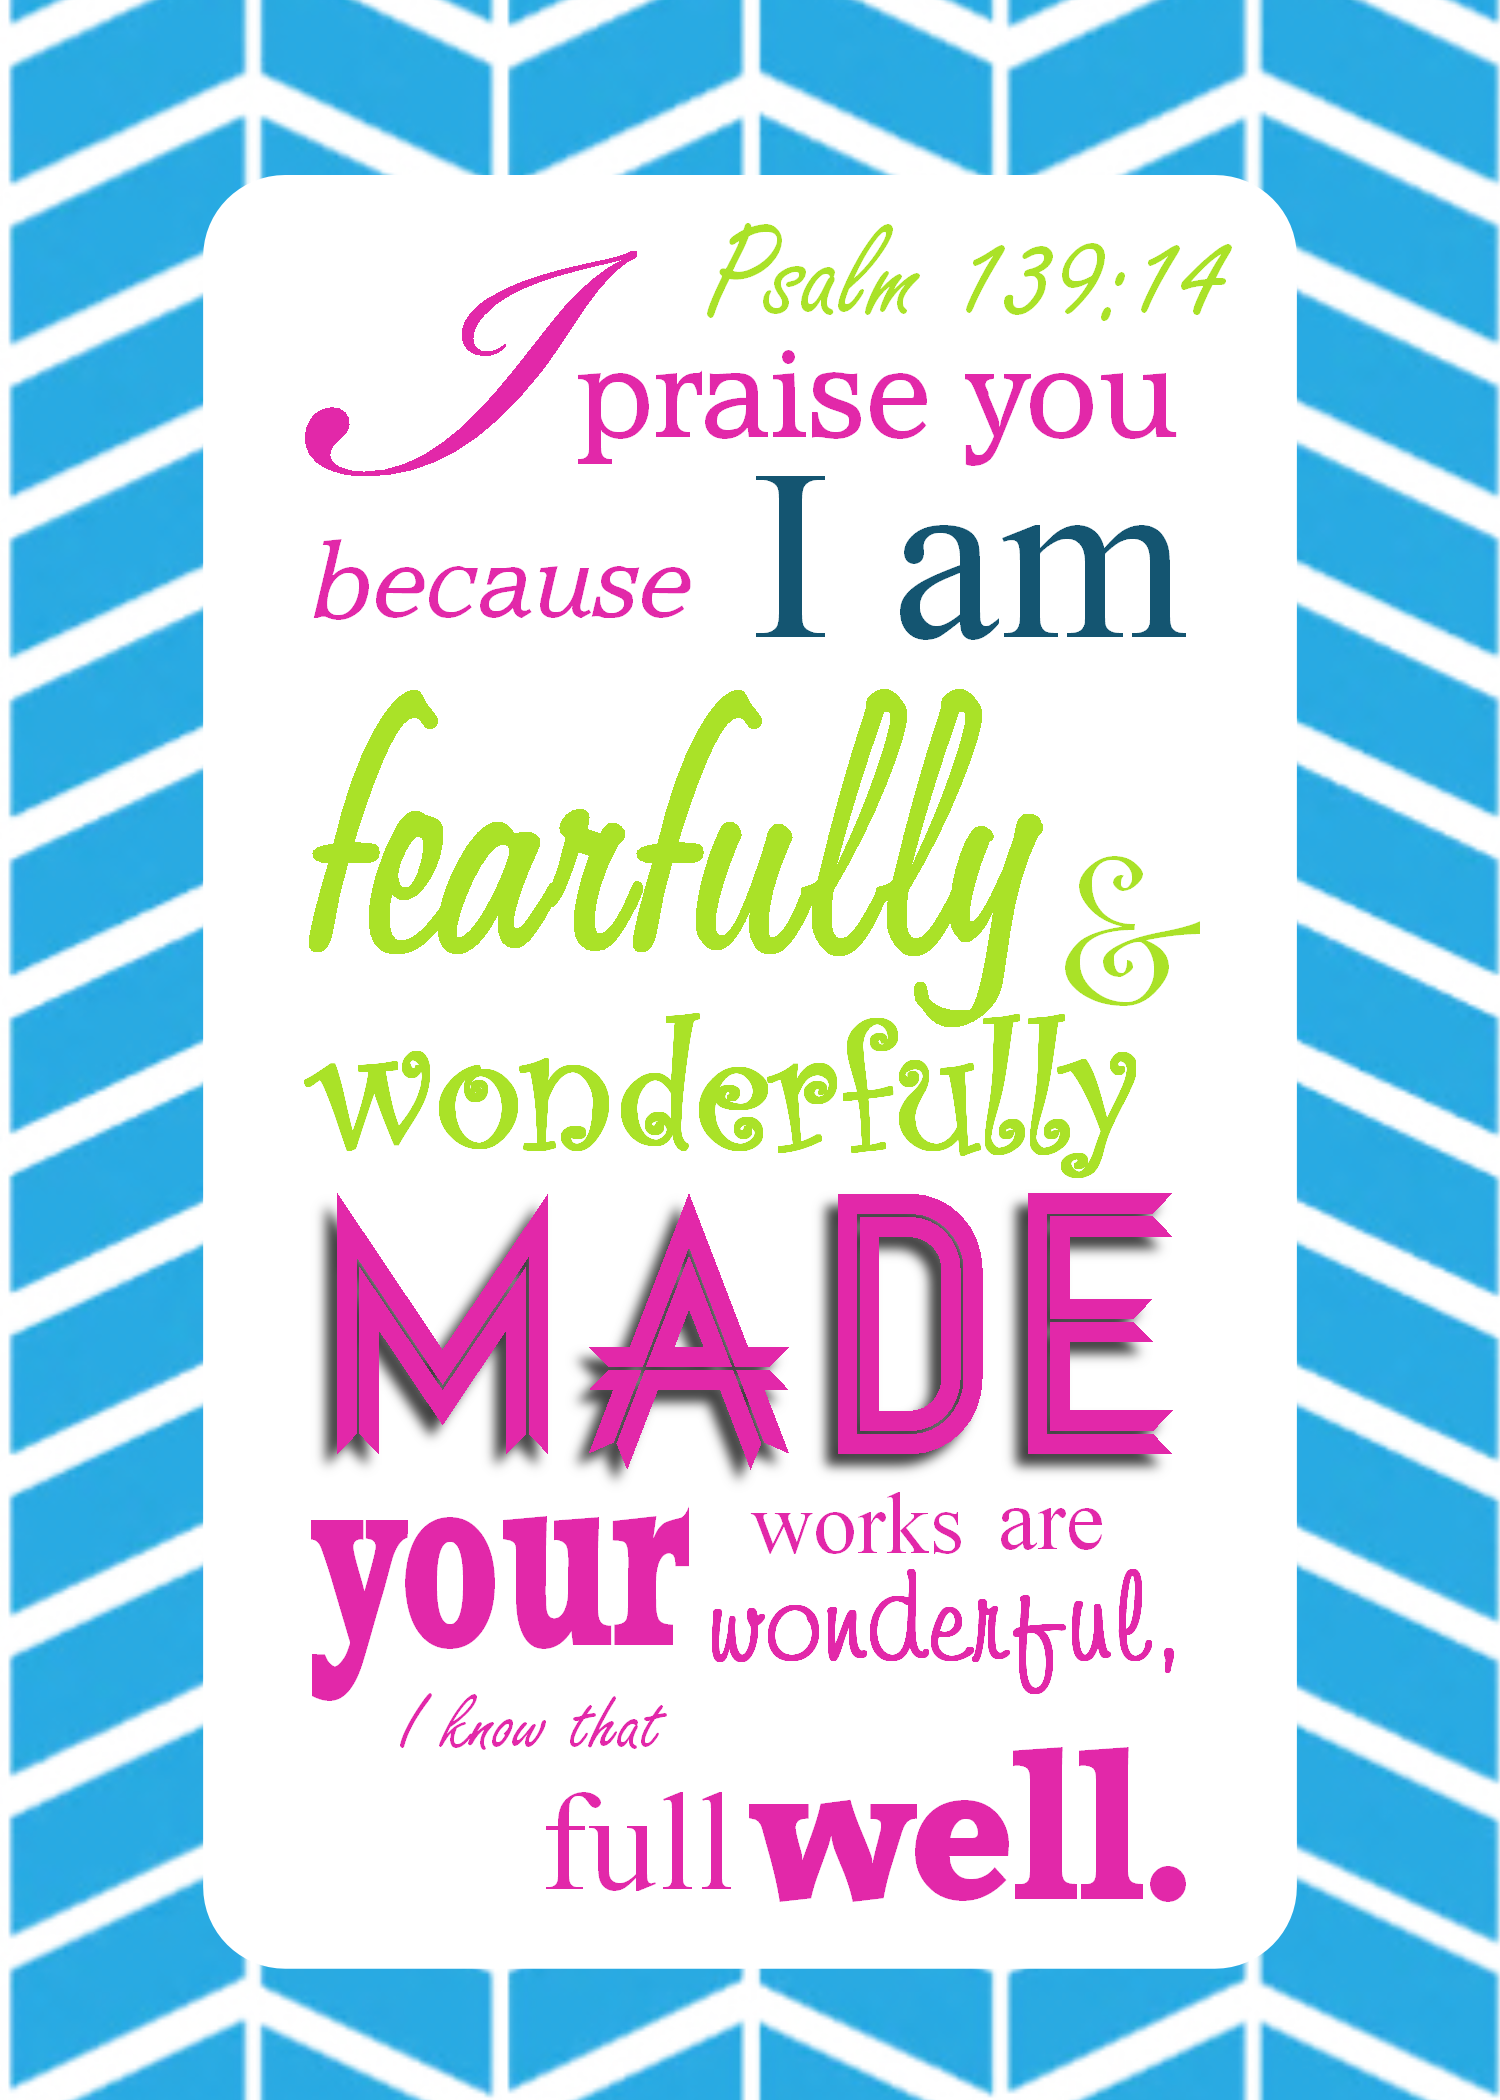 psalm 13914 modern scripture printable i am